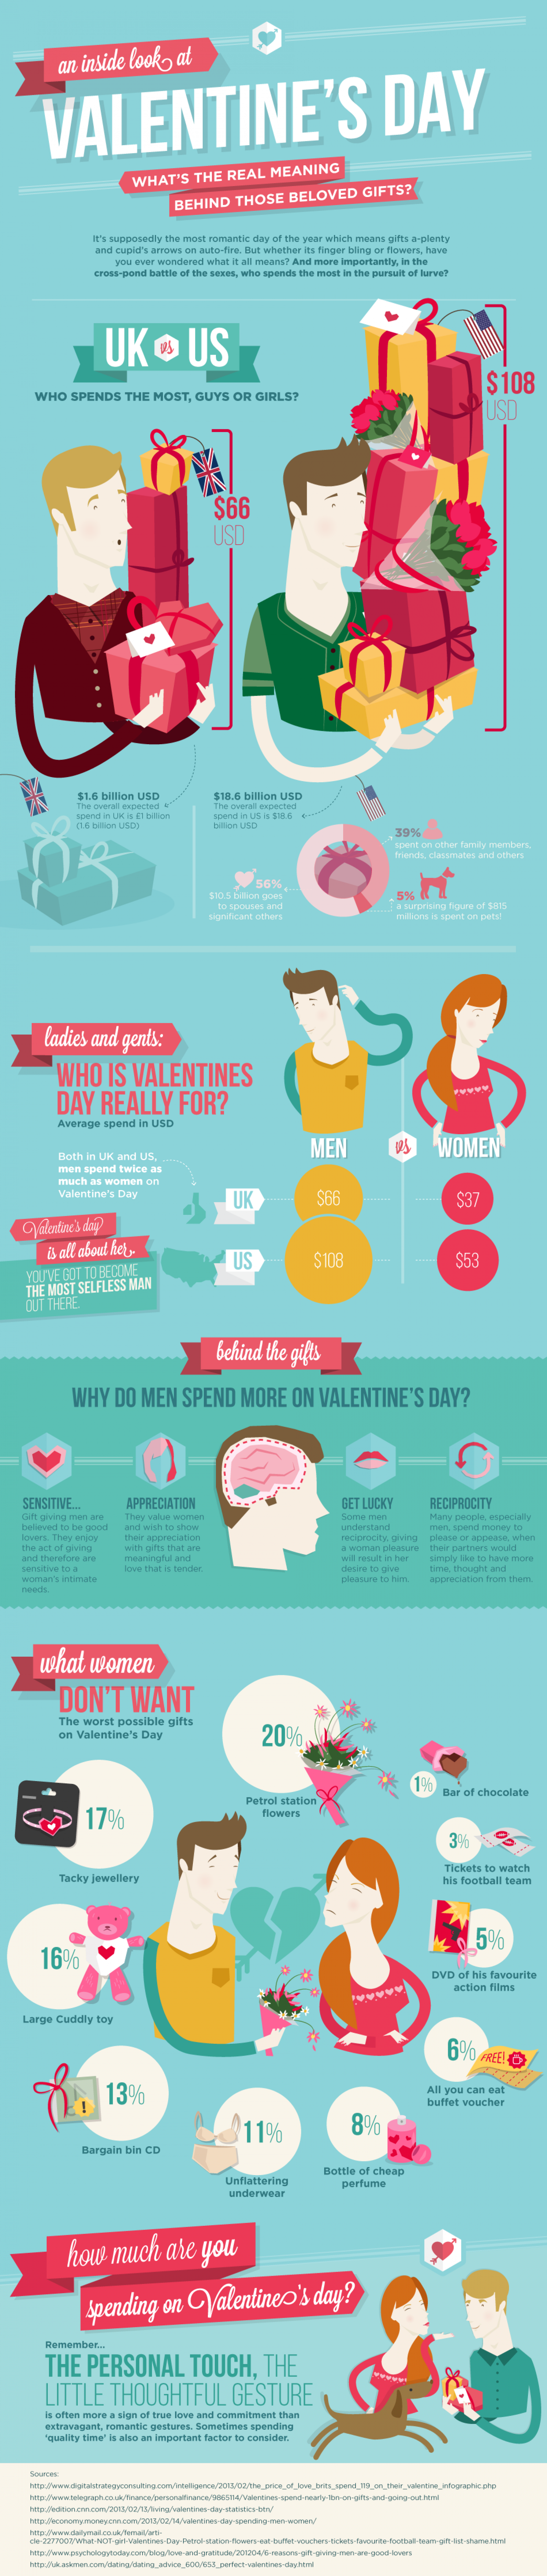 Valentine's Day The Meaning of Gifts